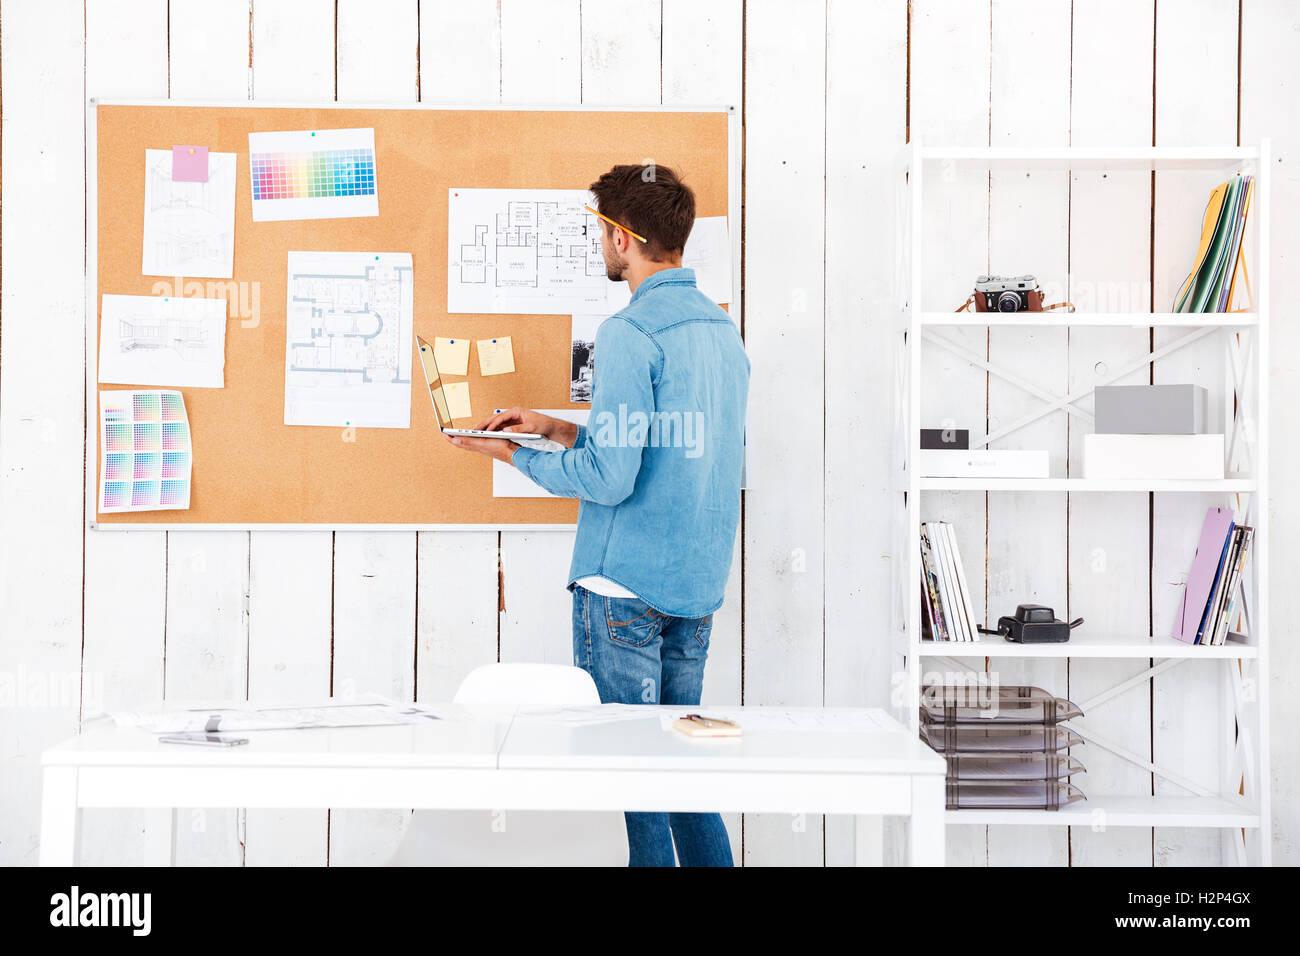 Back view of a concentrated young man looking at the task board and using laptop while standing in office Stock Photo